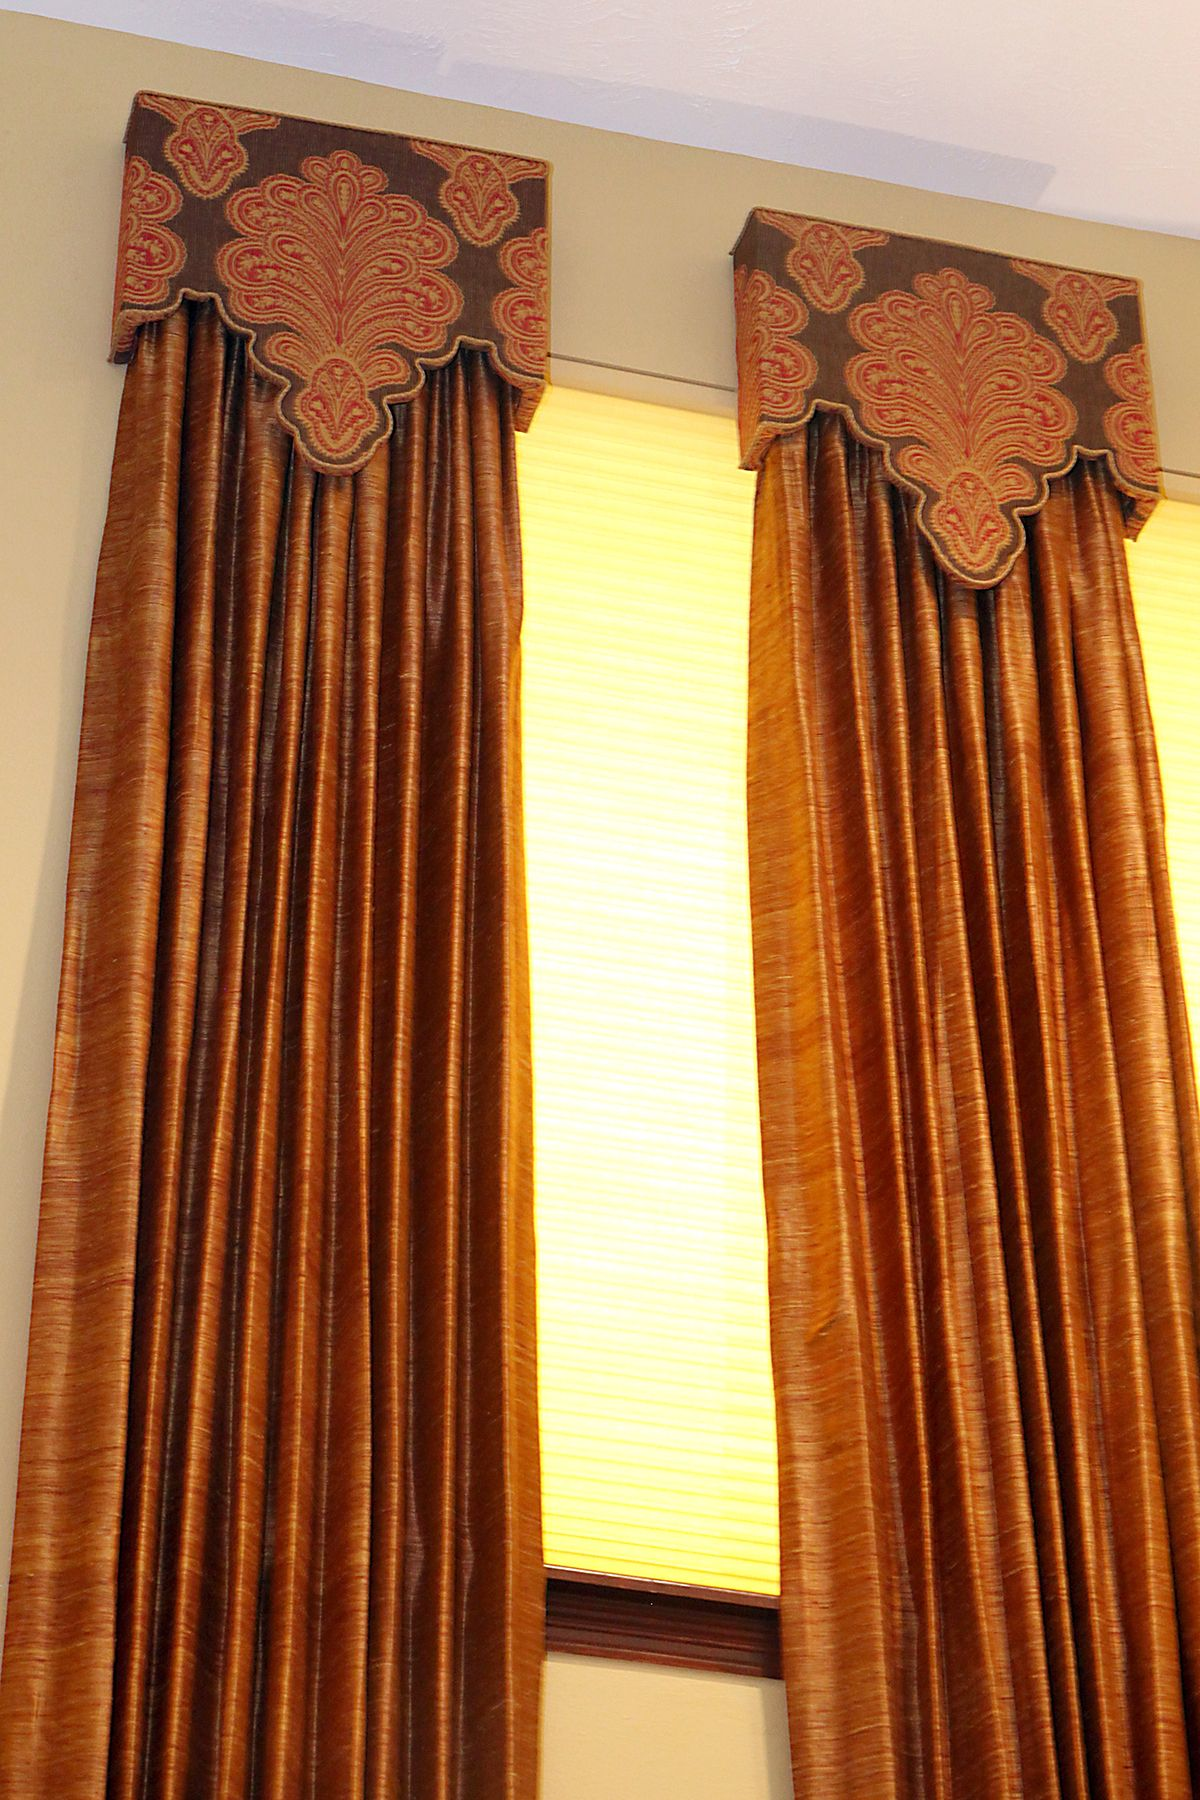 A Closer Look At These Custom Cornices Which Are Uniquely Shaped